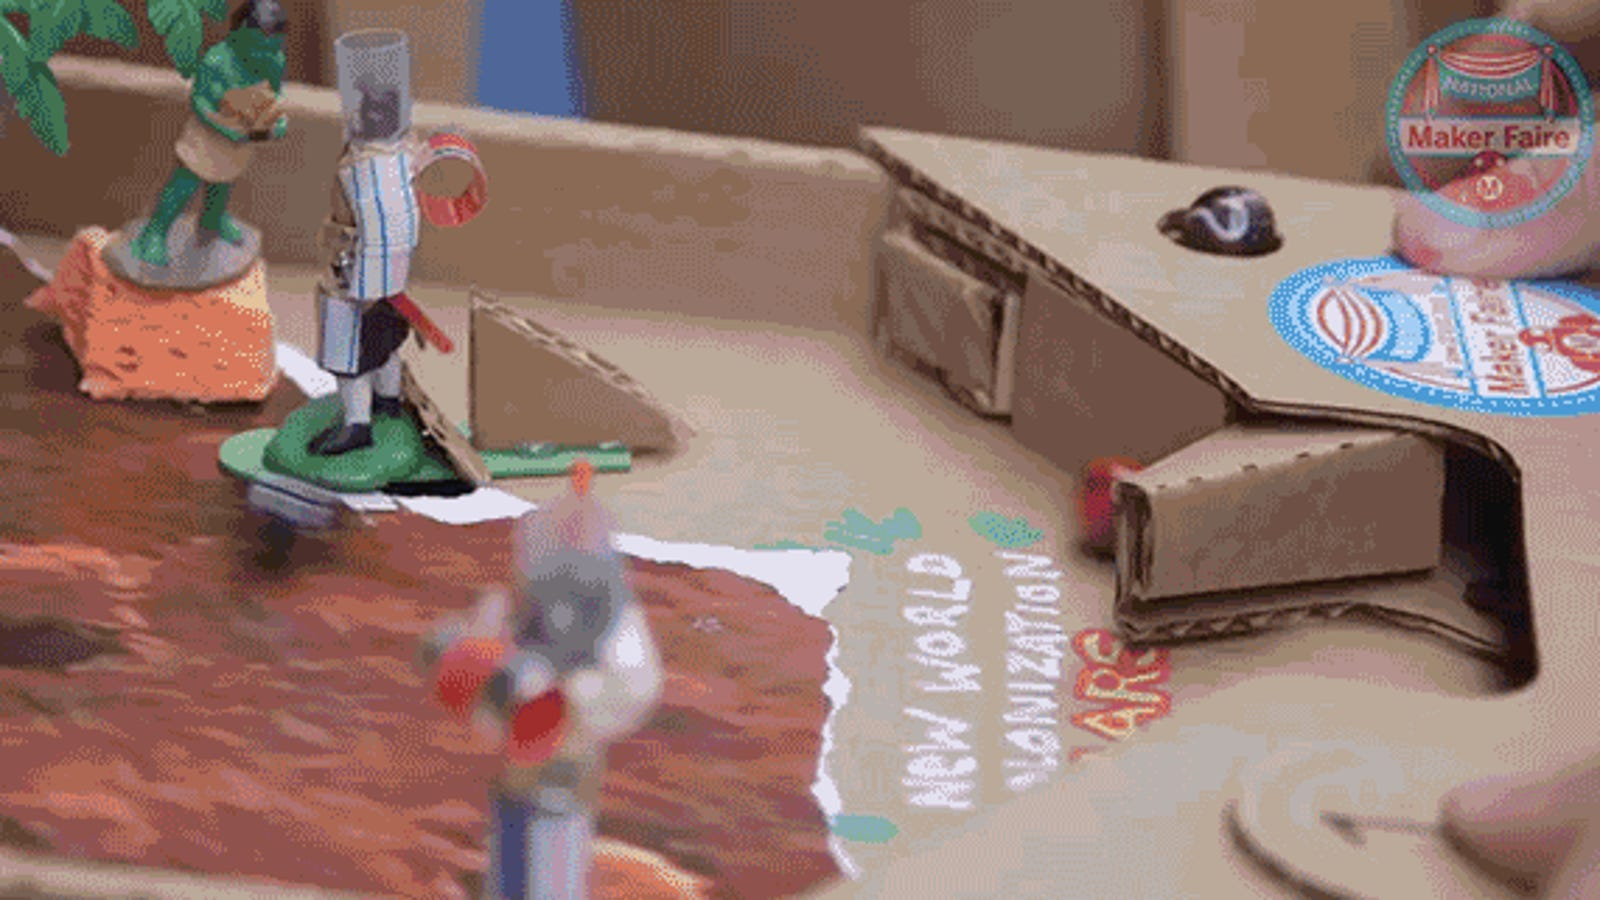 You Can Customize These Cardboard Pinball Machines However You Want